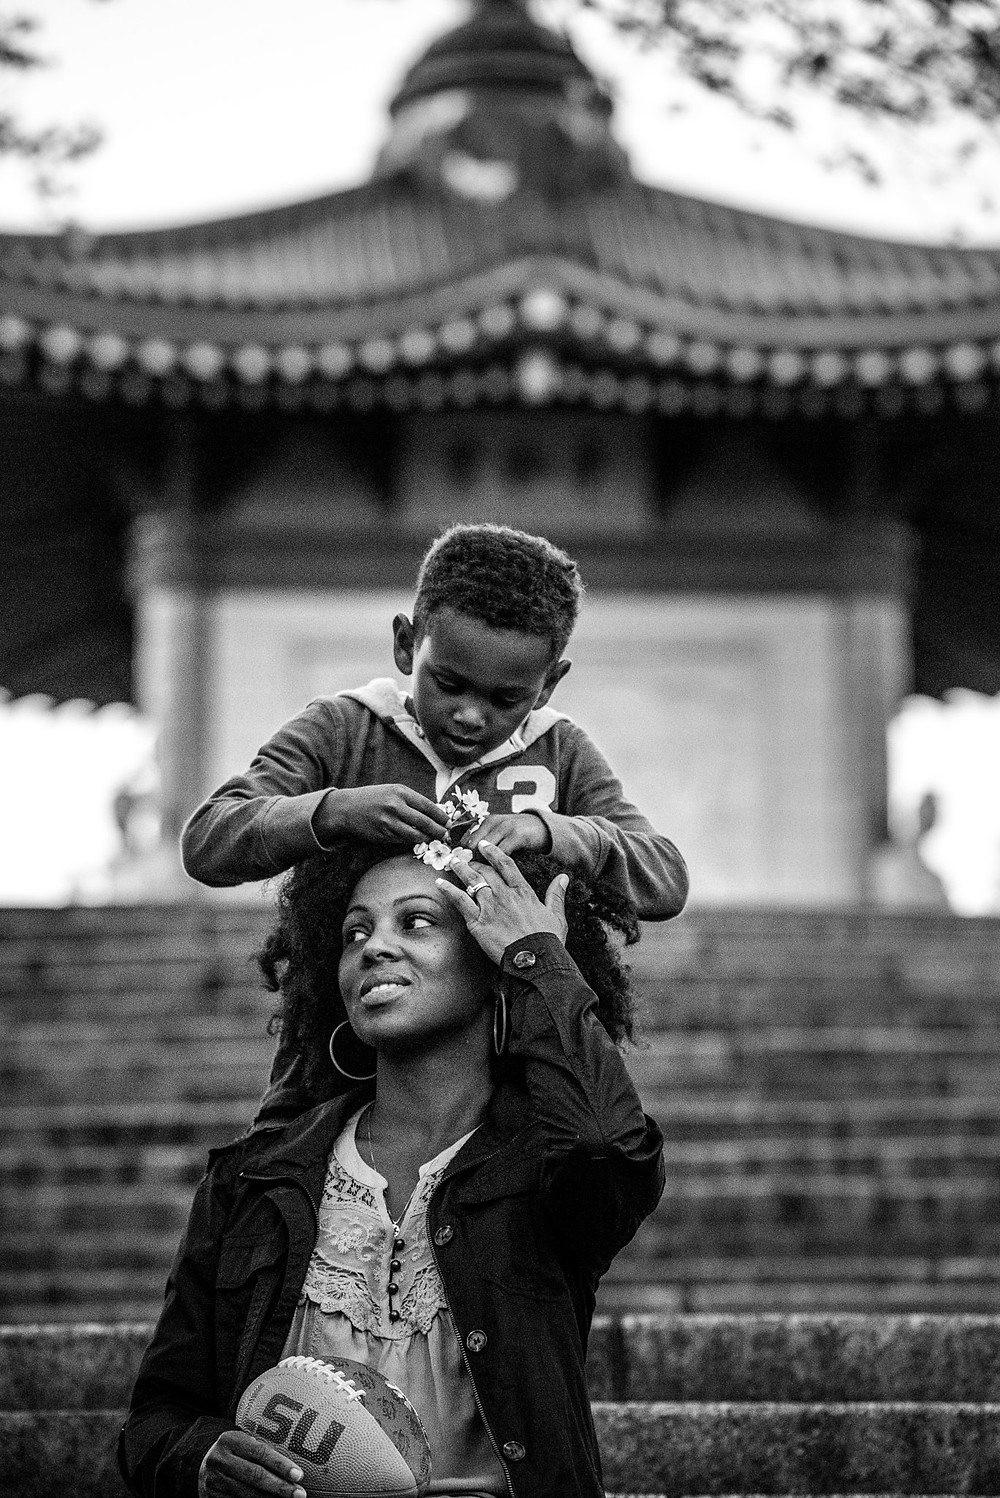 Jackson puts flowers in his mother's hair